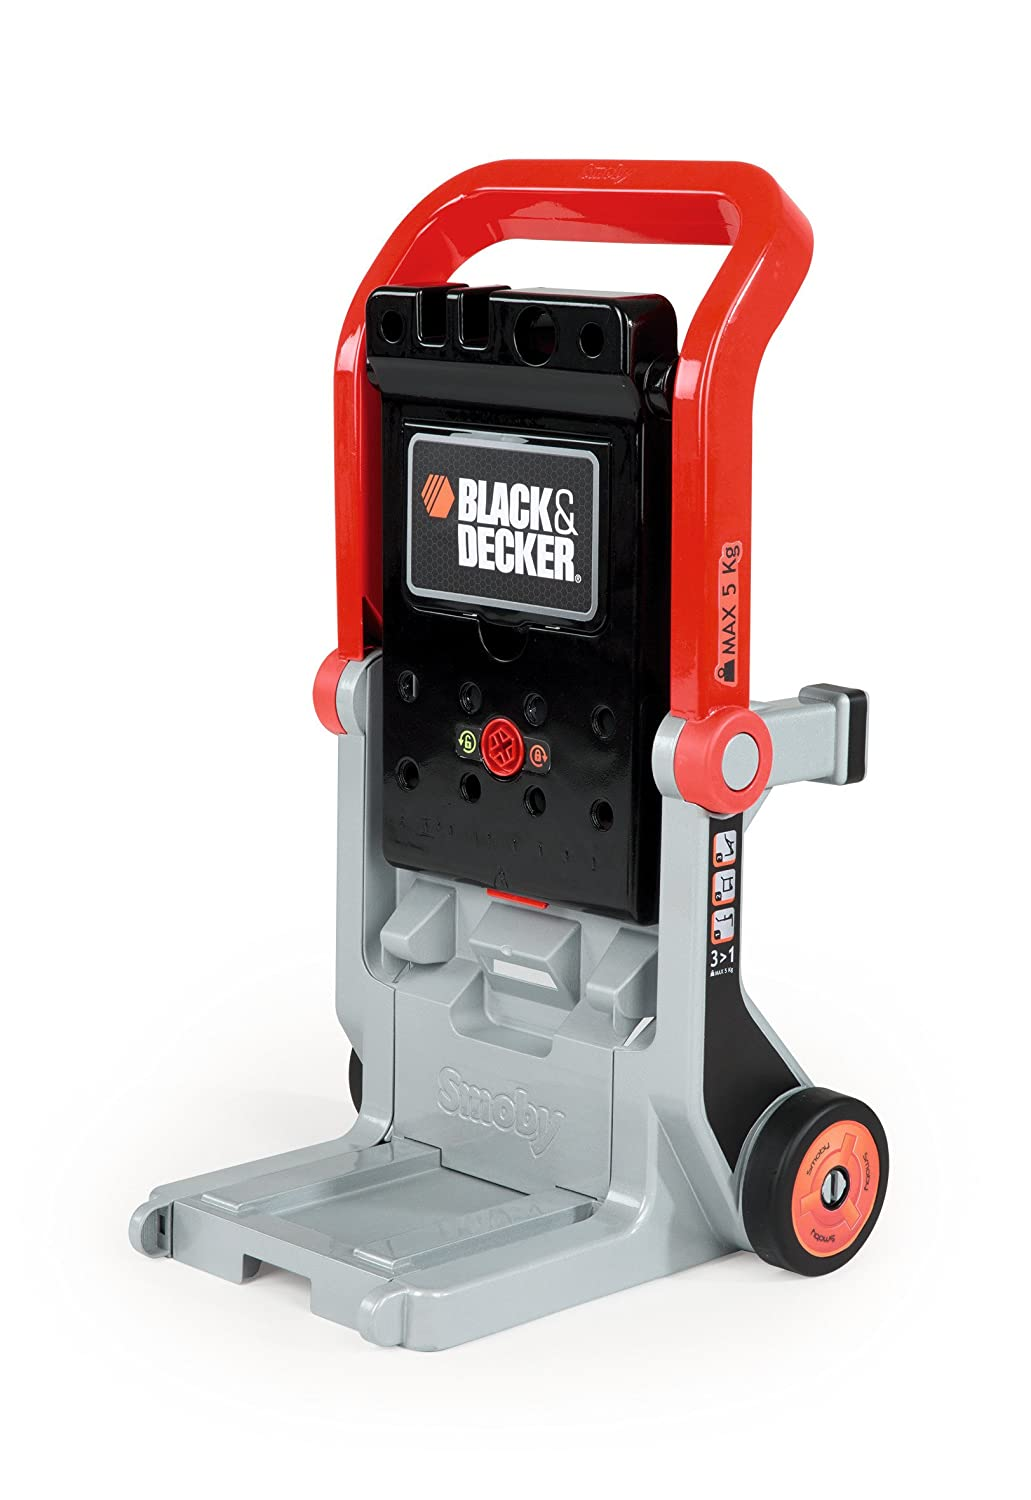 Black und Decker 3-in-1 Multi-Werkbank